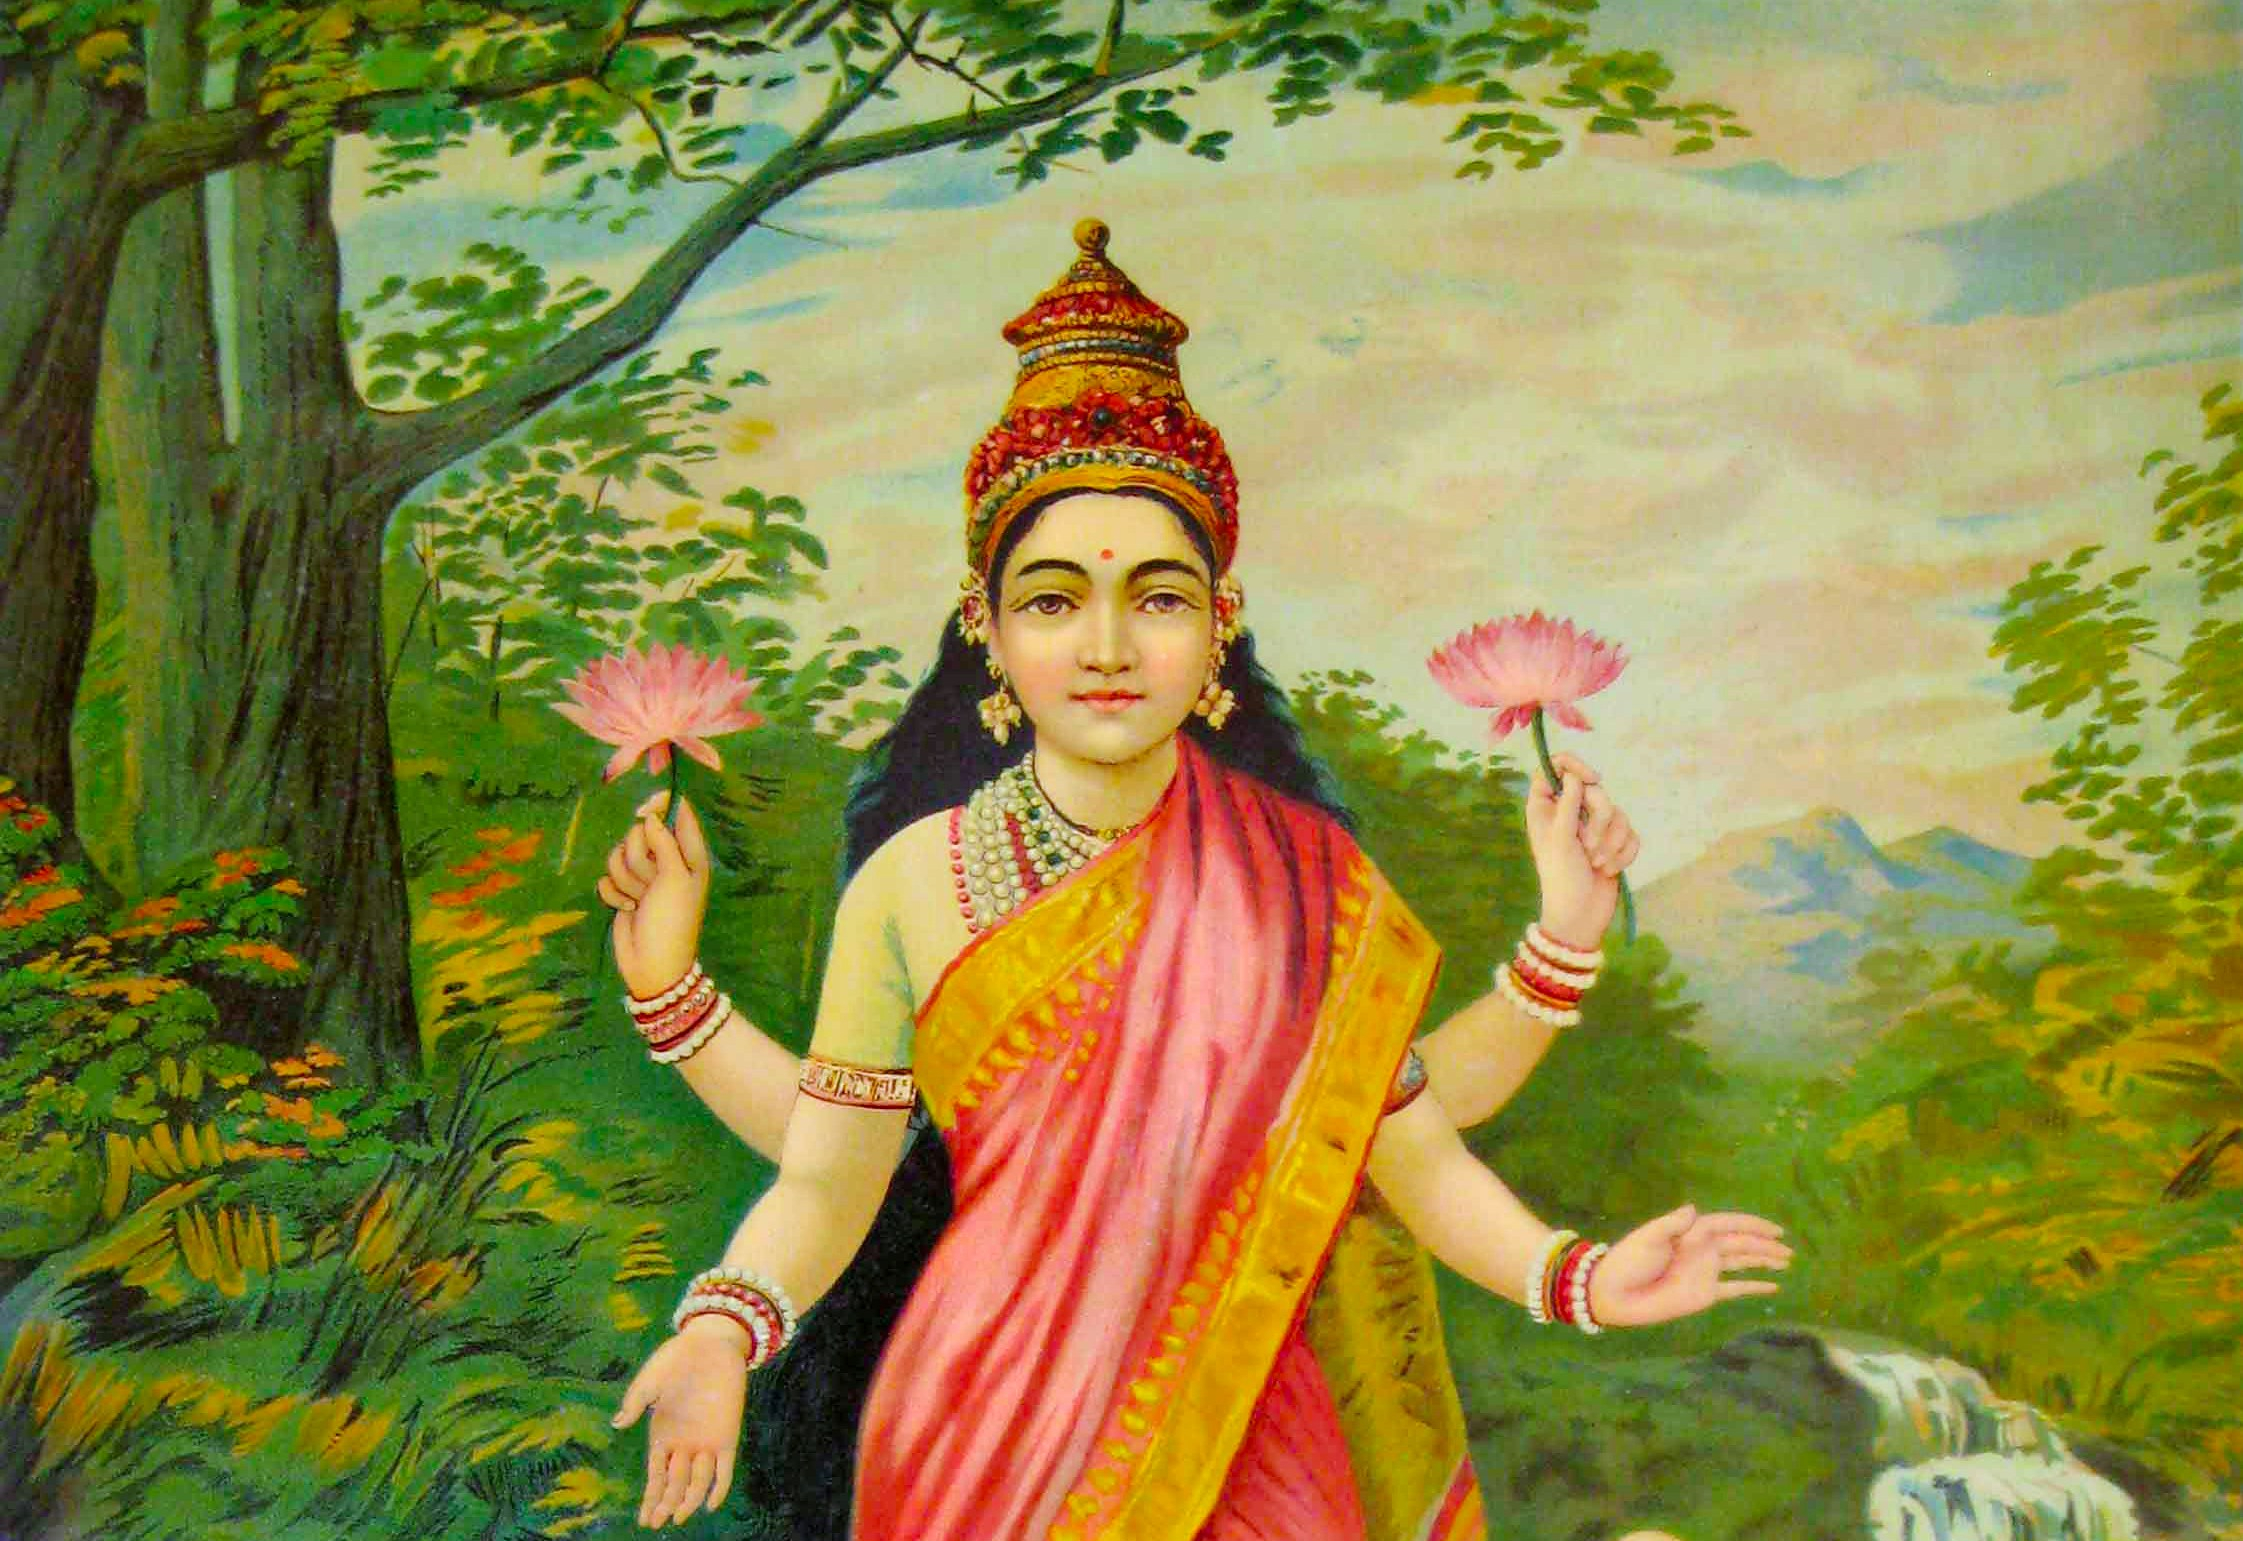 Lakshmi, a goddess stands on a lotus flower in a body of water. She wears a pink sari and has four arms, two of which are holding flowers. Her gaze rests calmly on the viewer.